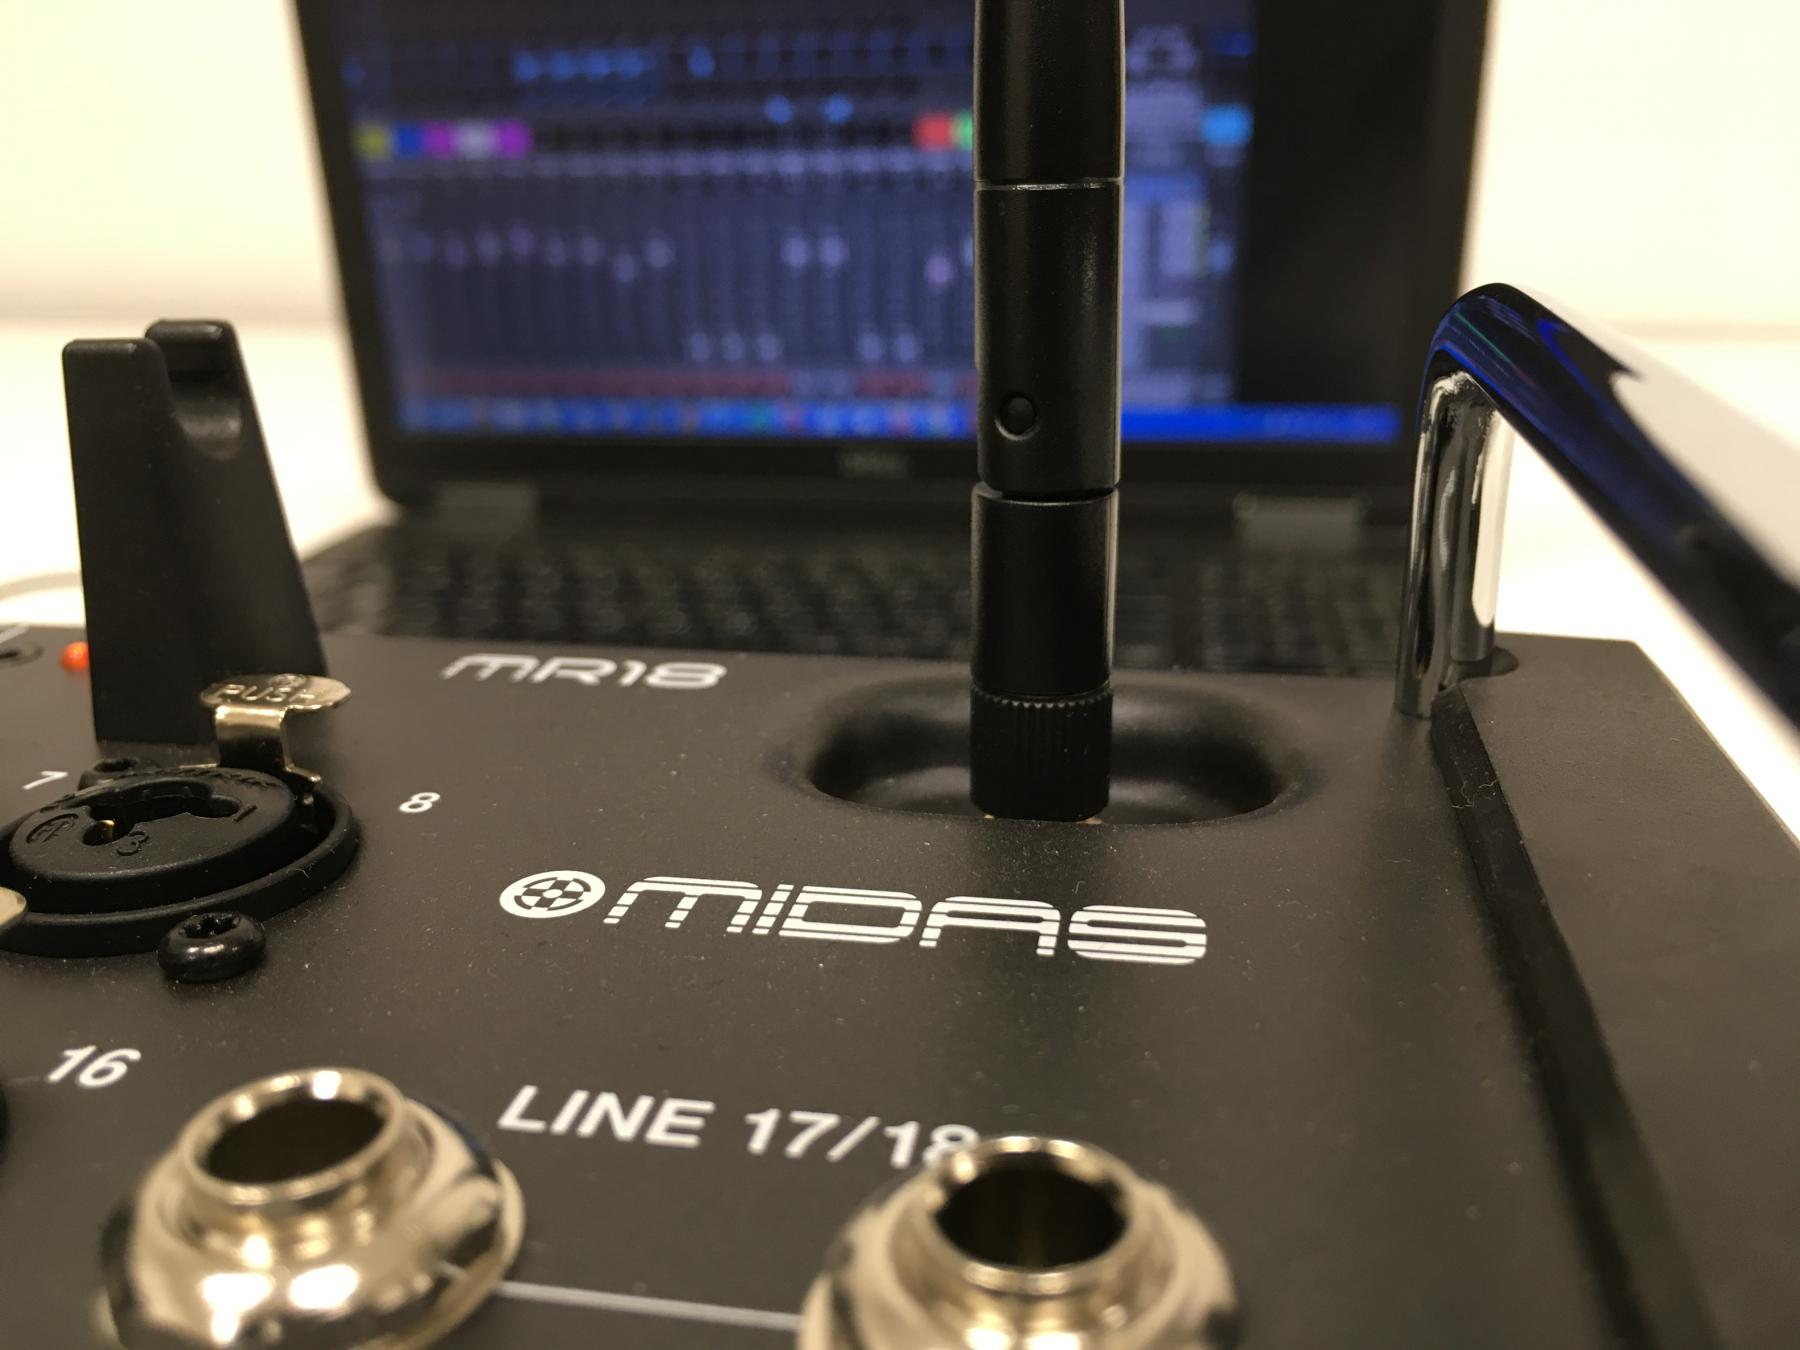 How to upgrade your MR/X AIR series mixer firmware